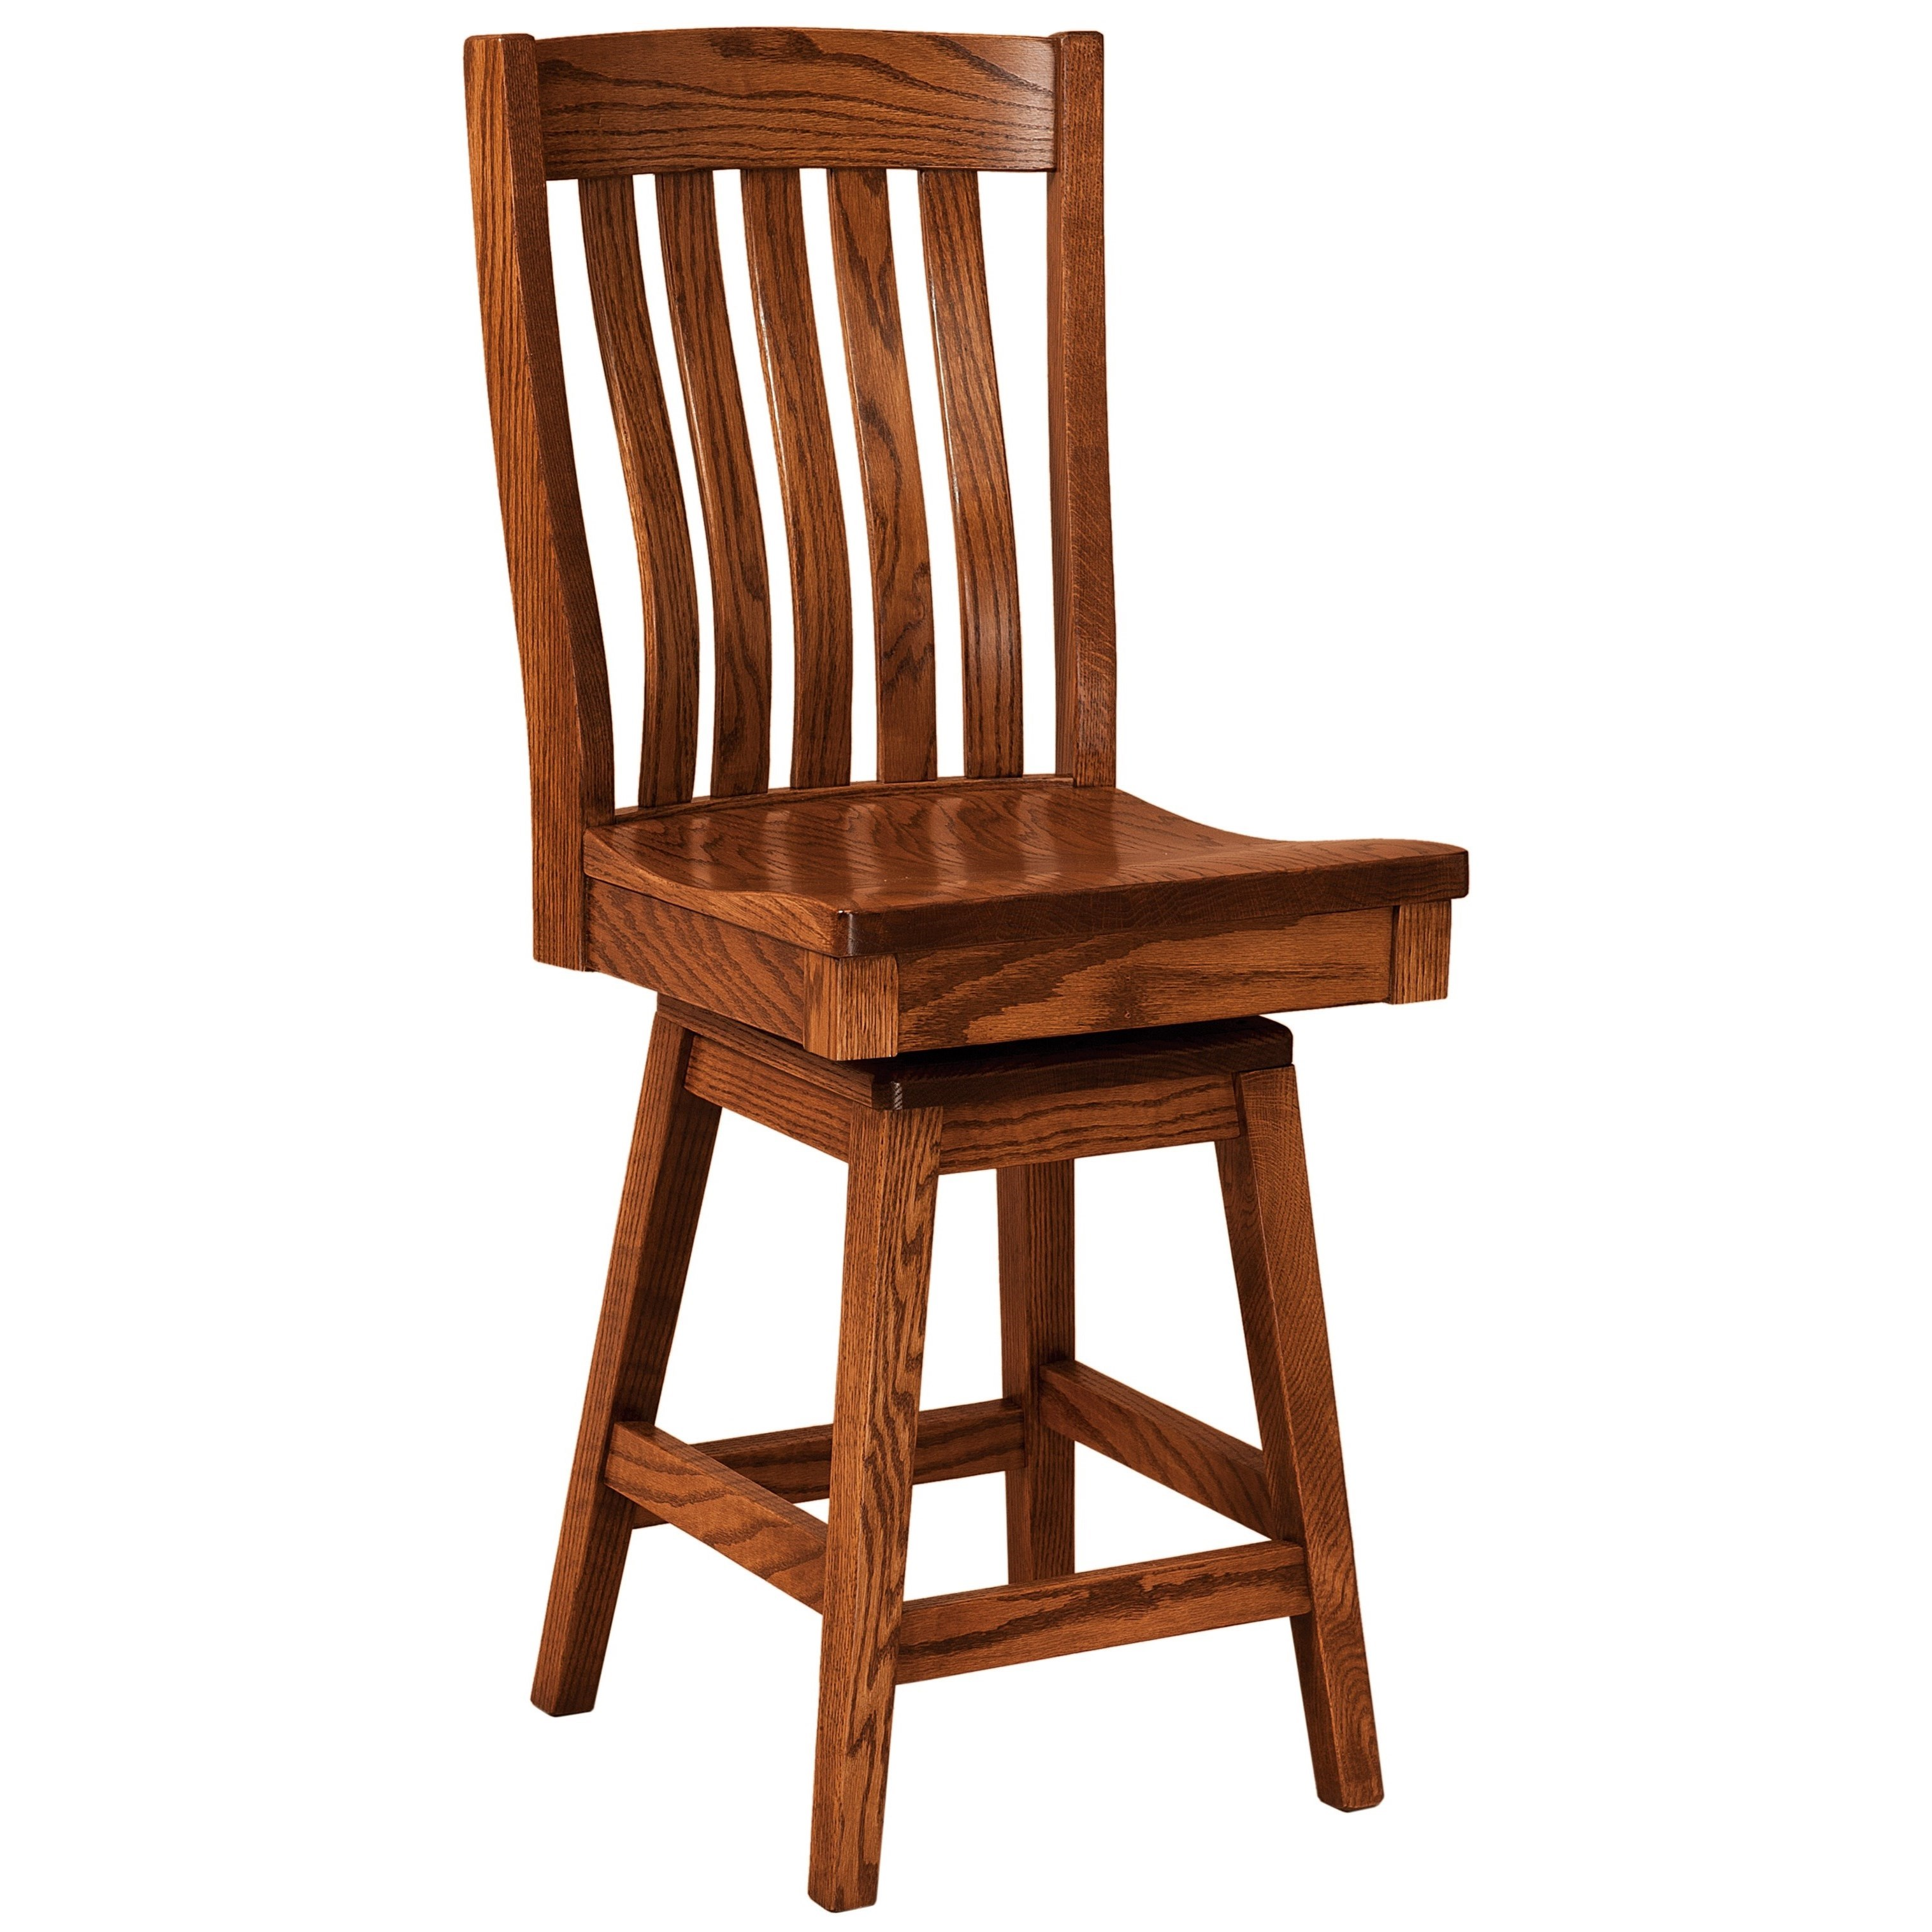 Houghton Swivel Counter Height Stool - Leather Seat by F&N Woodworking at Mueller Furniture